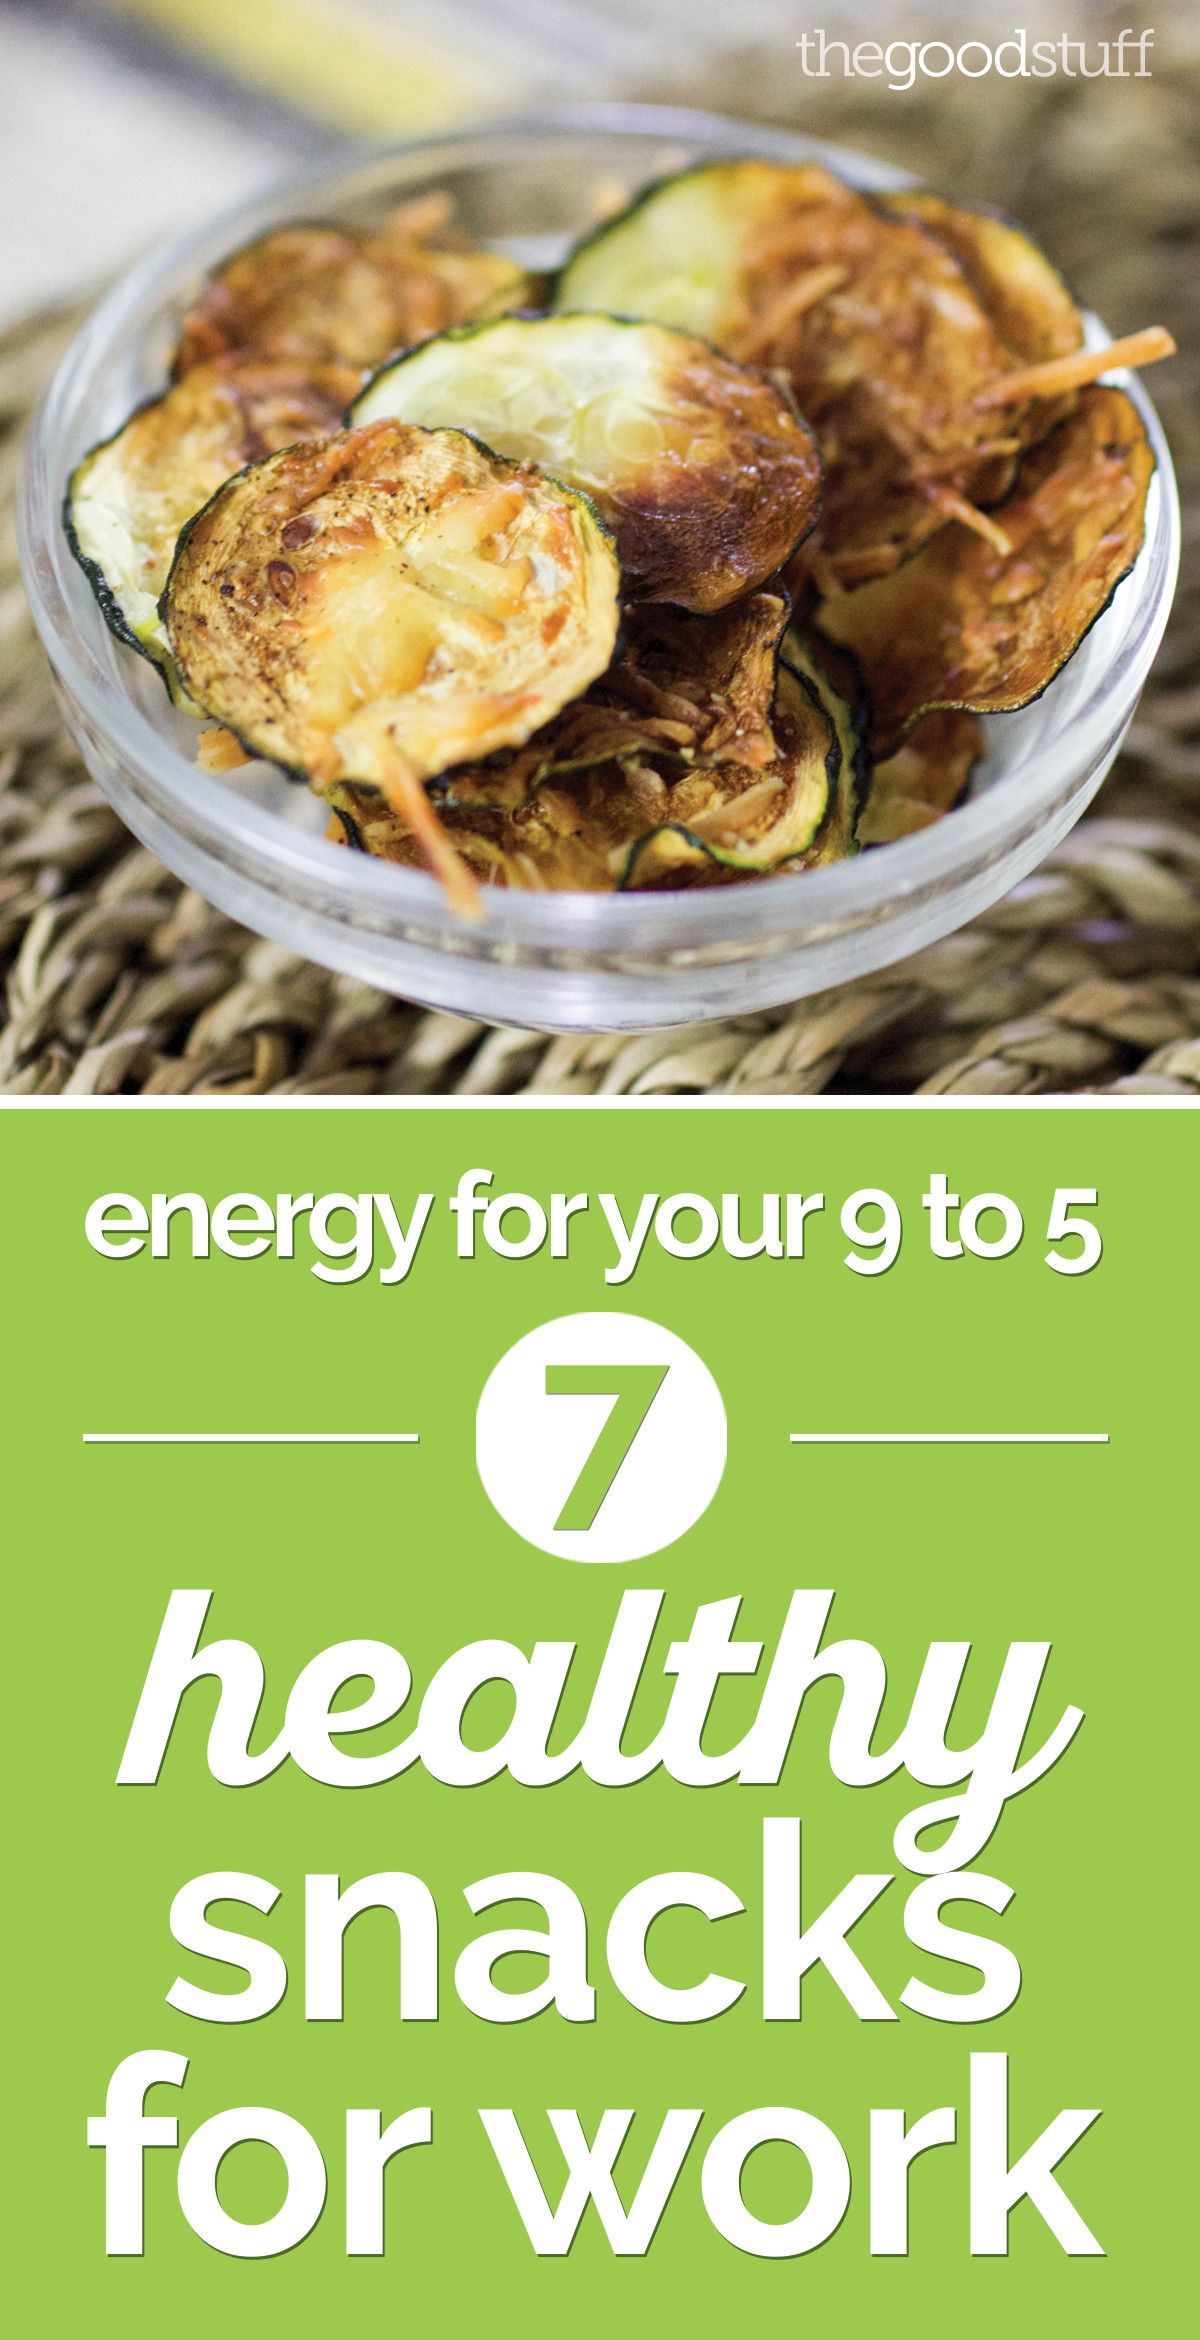 Healthy Snacks For Work  Energy for Your 9 to 5 10 Healthy Snacks for Work